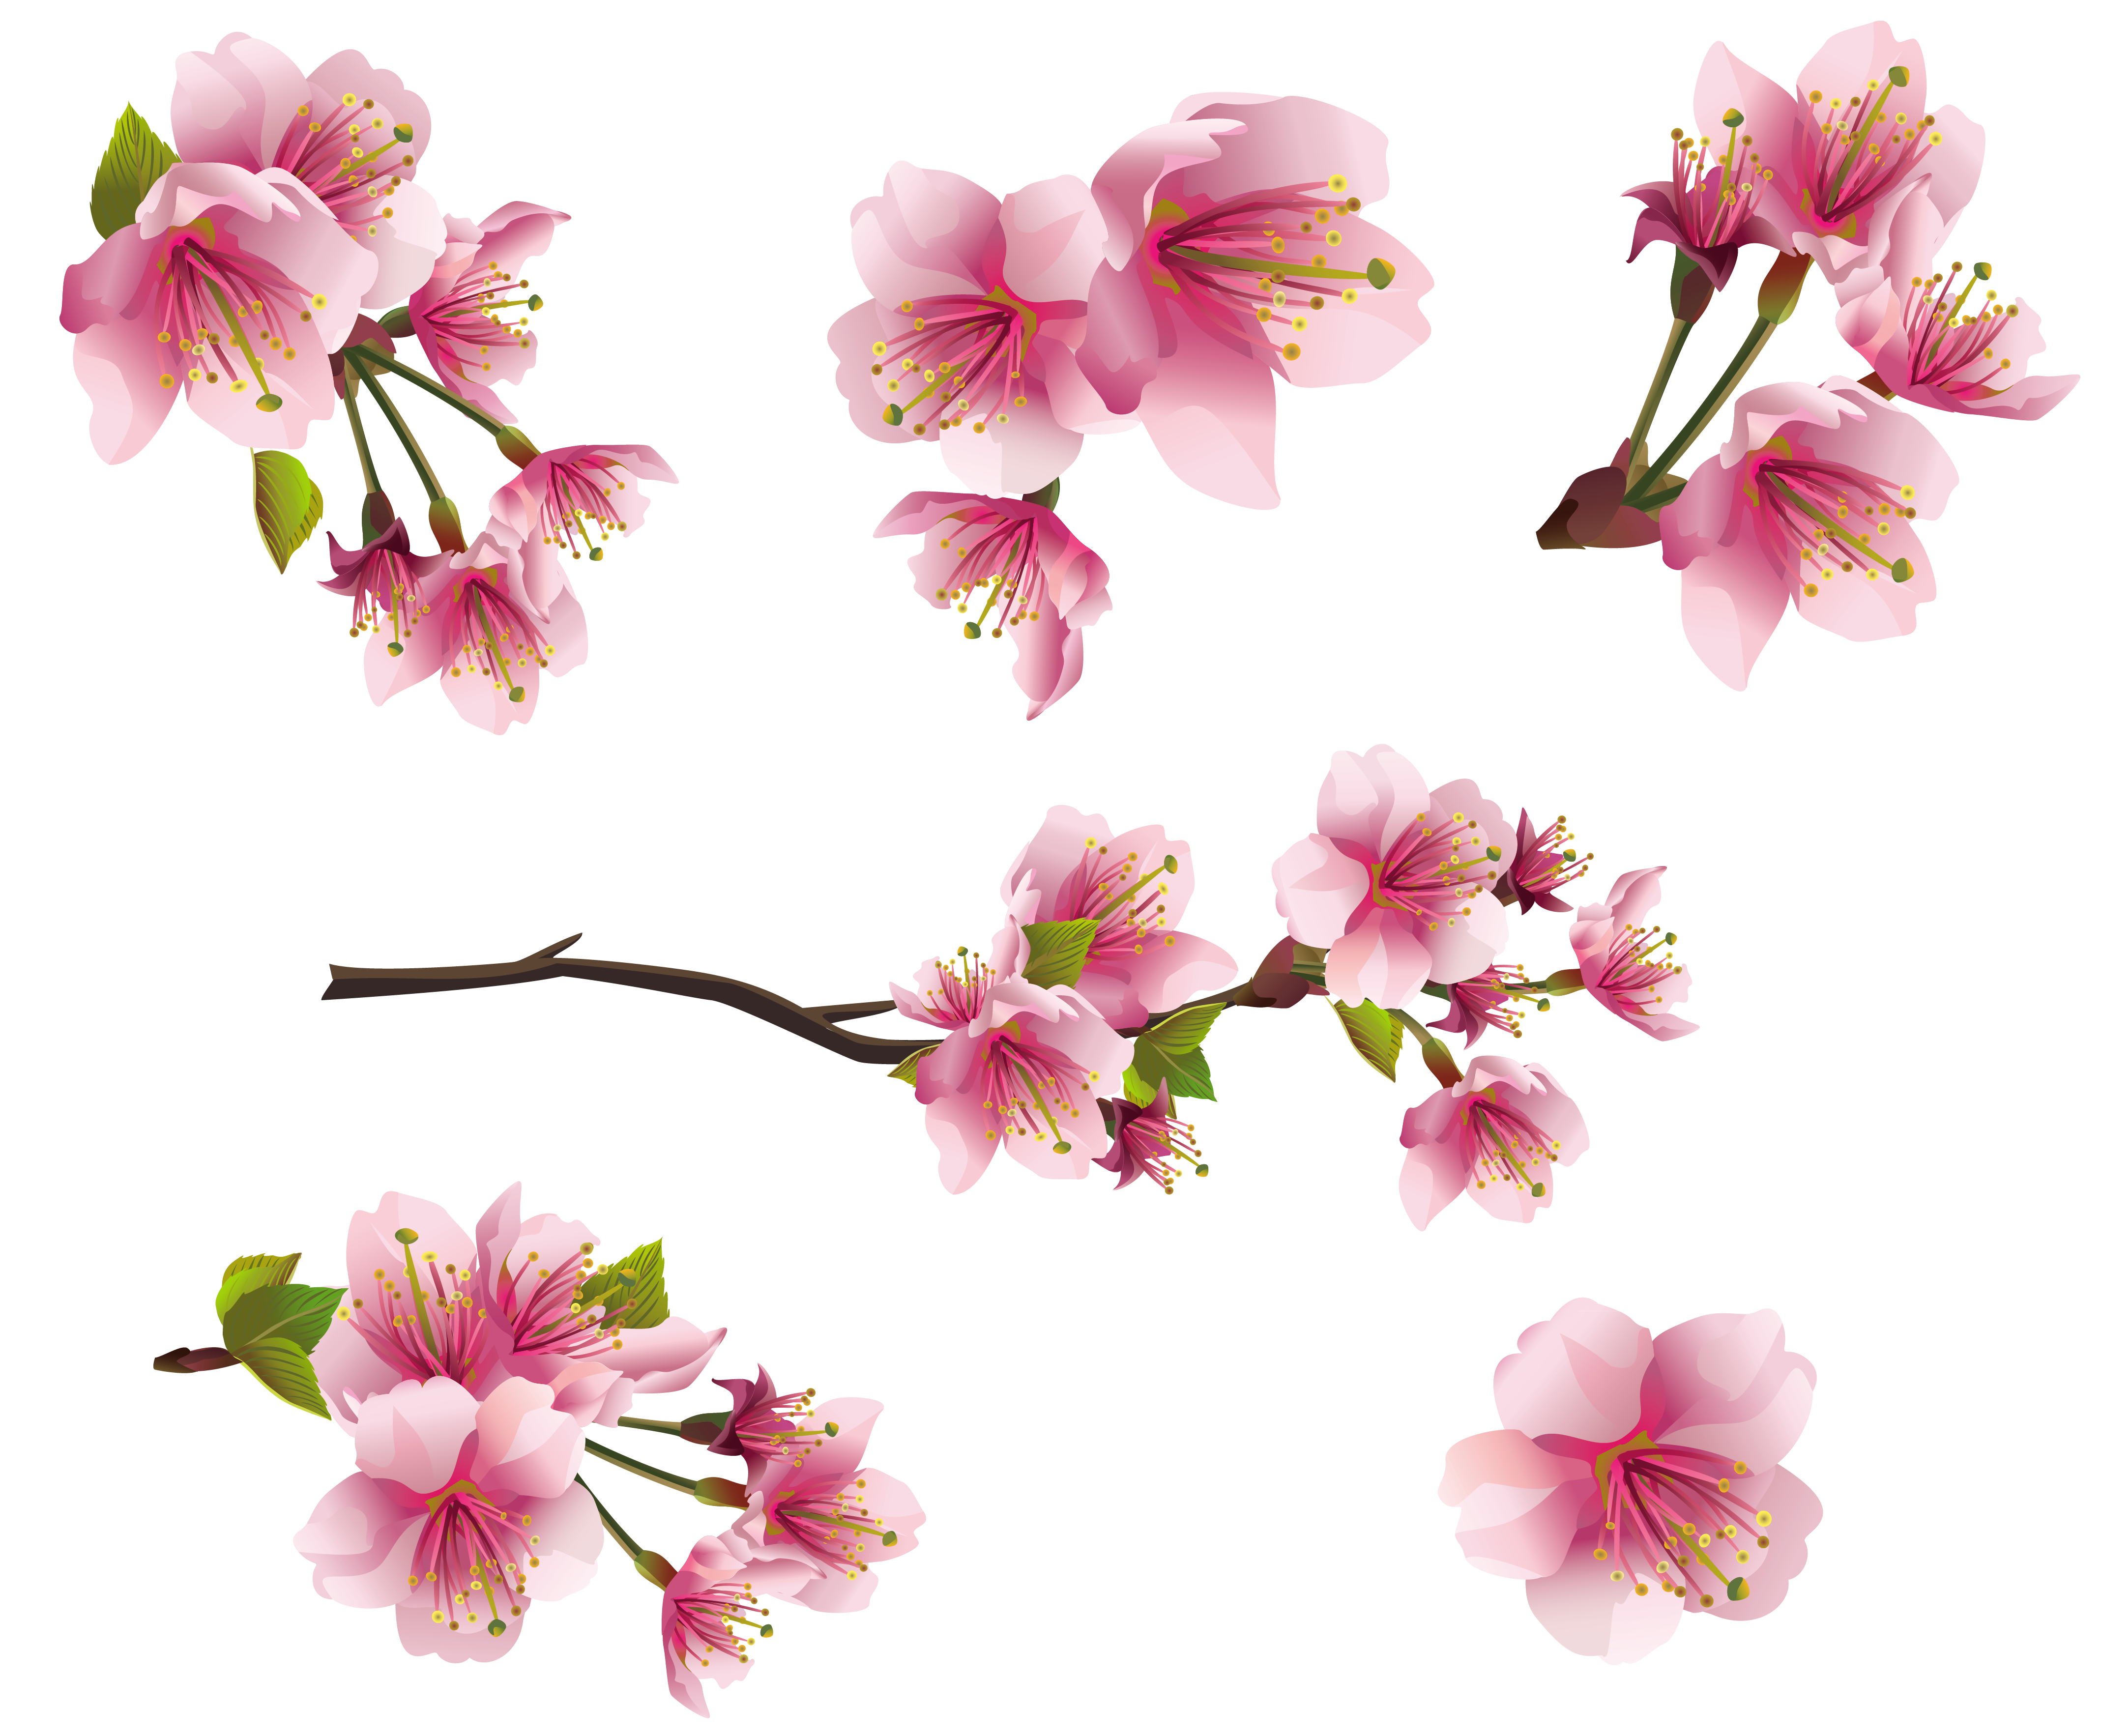 Tiny flower png. Pics photos gallery free